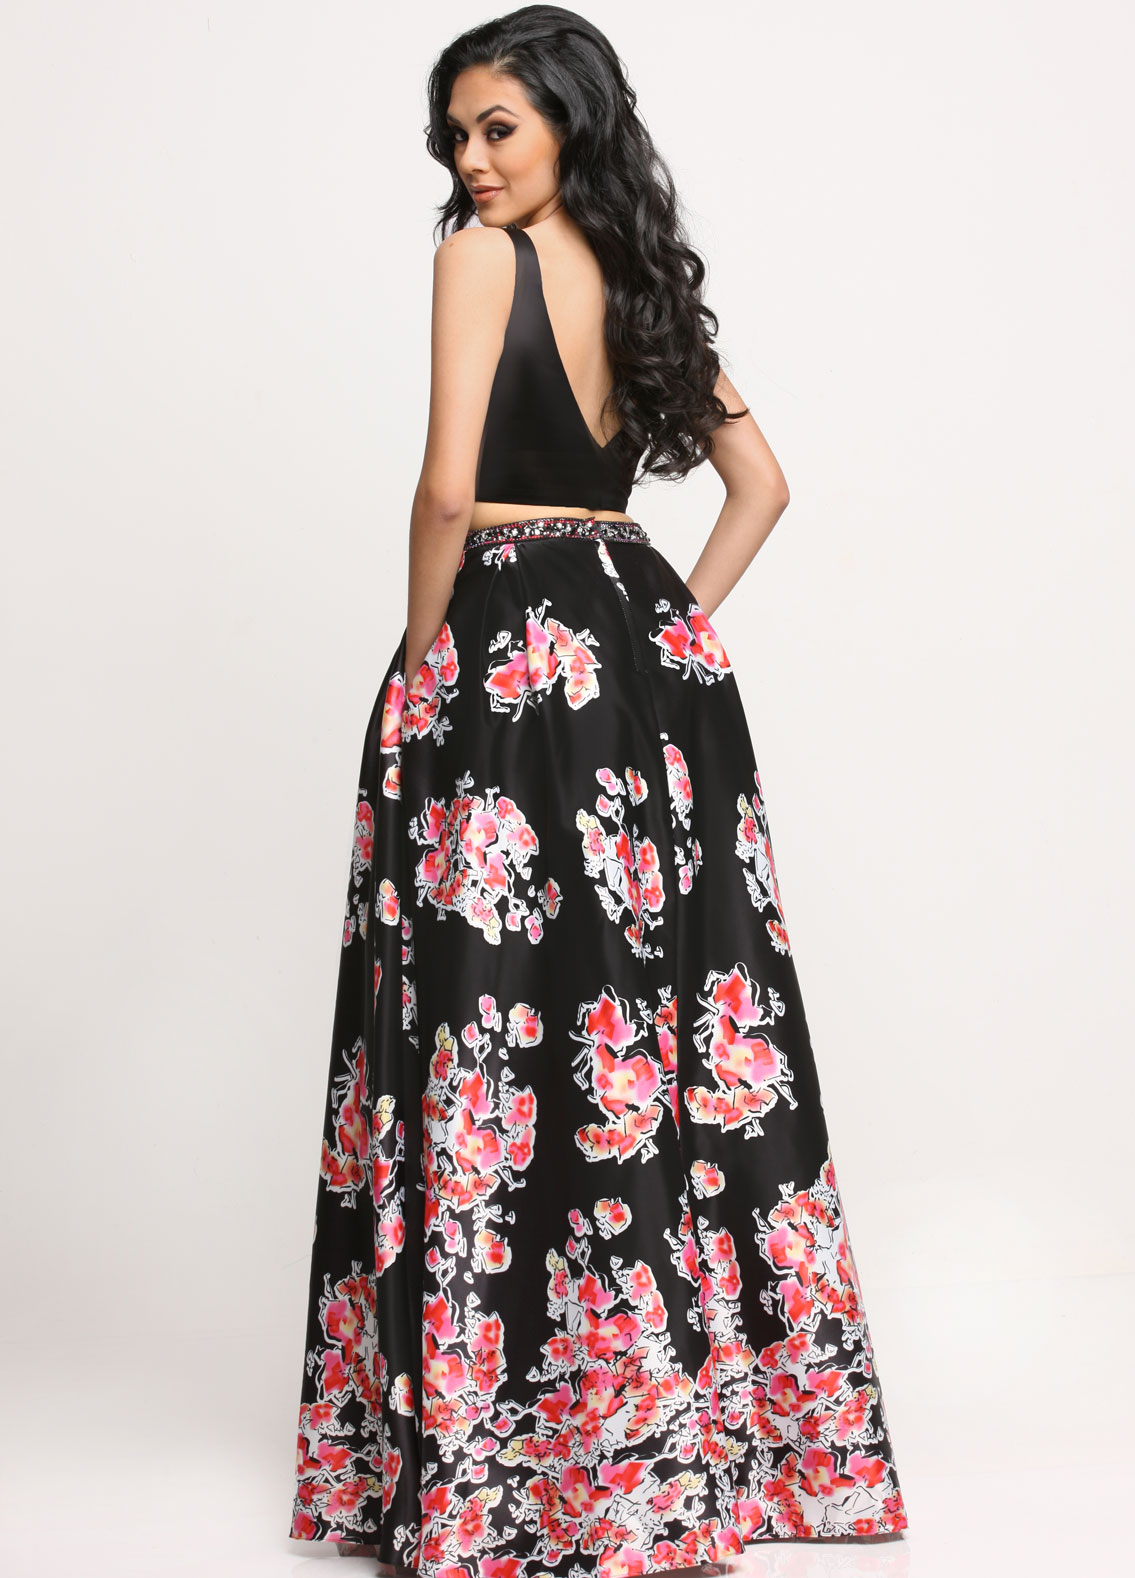 Image showing back view of style #71627